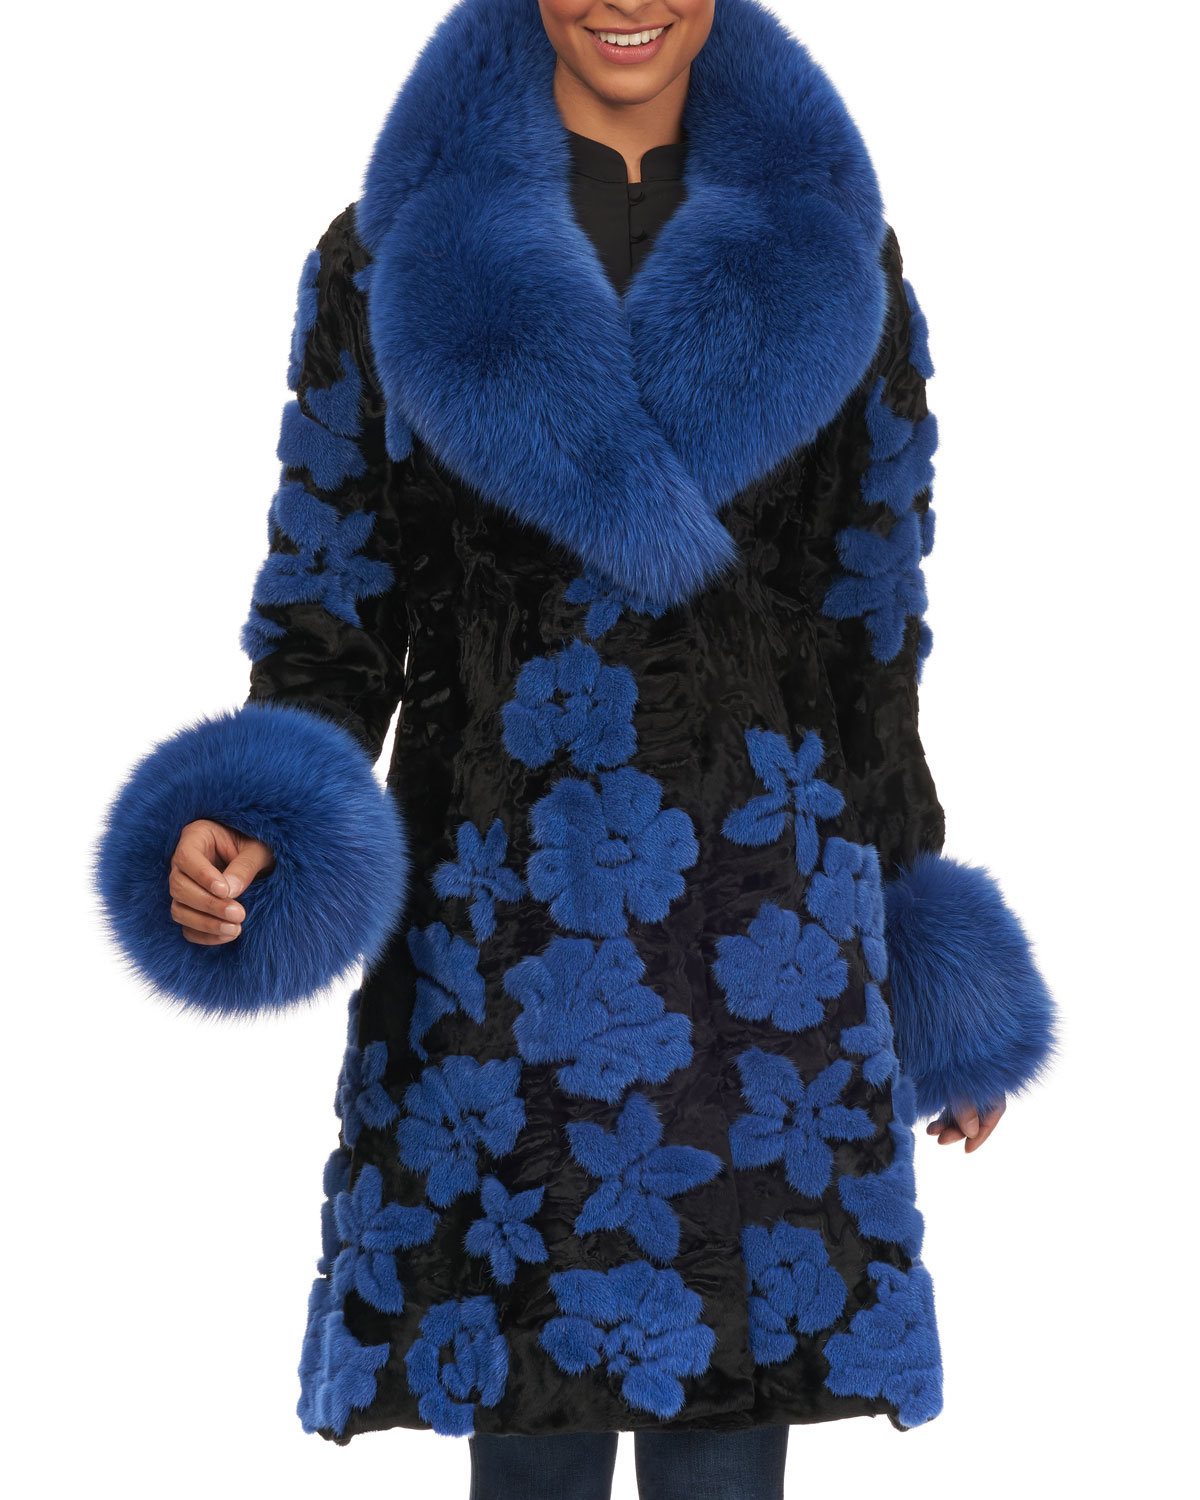 Swakara Fur Stroller Coat w/ Mink Embroidery and Fox Collar